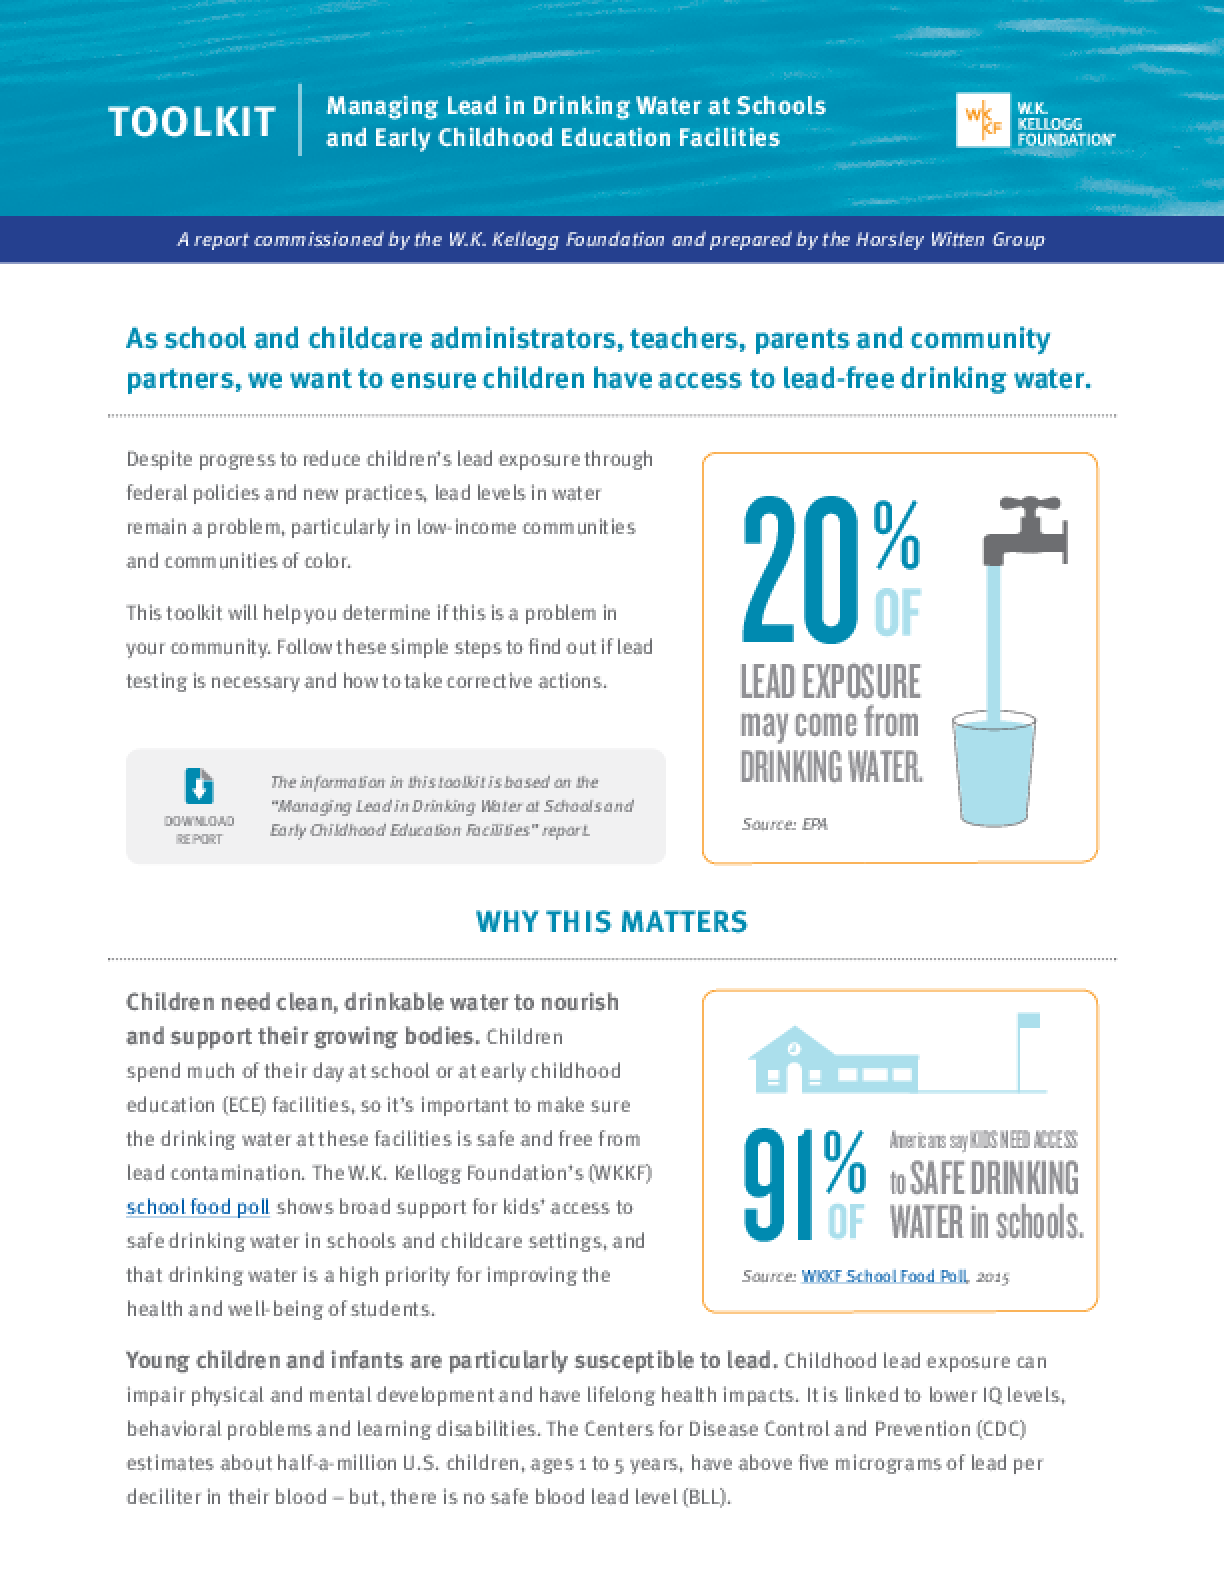 Managing Lead in Drinking Water at Schools and Early Childhood Education Facilities, Toolkit